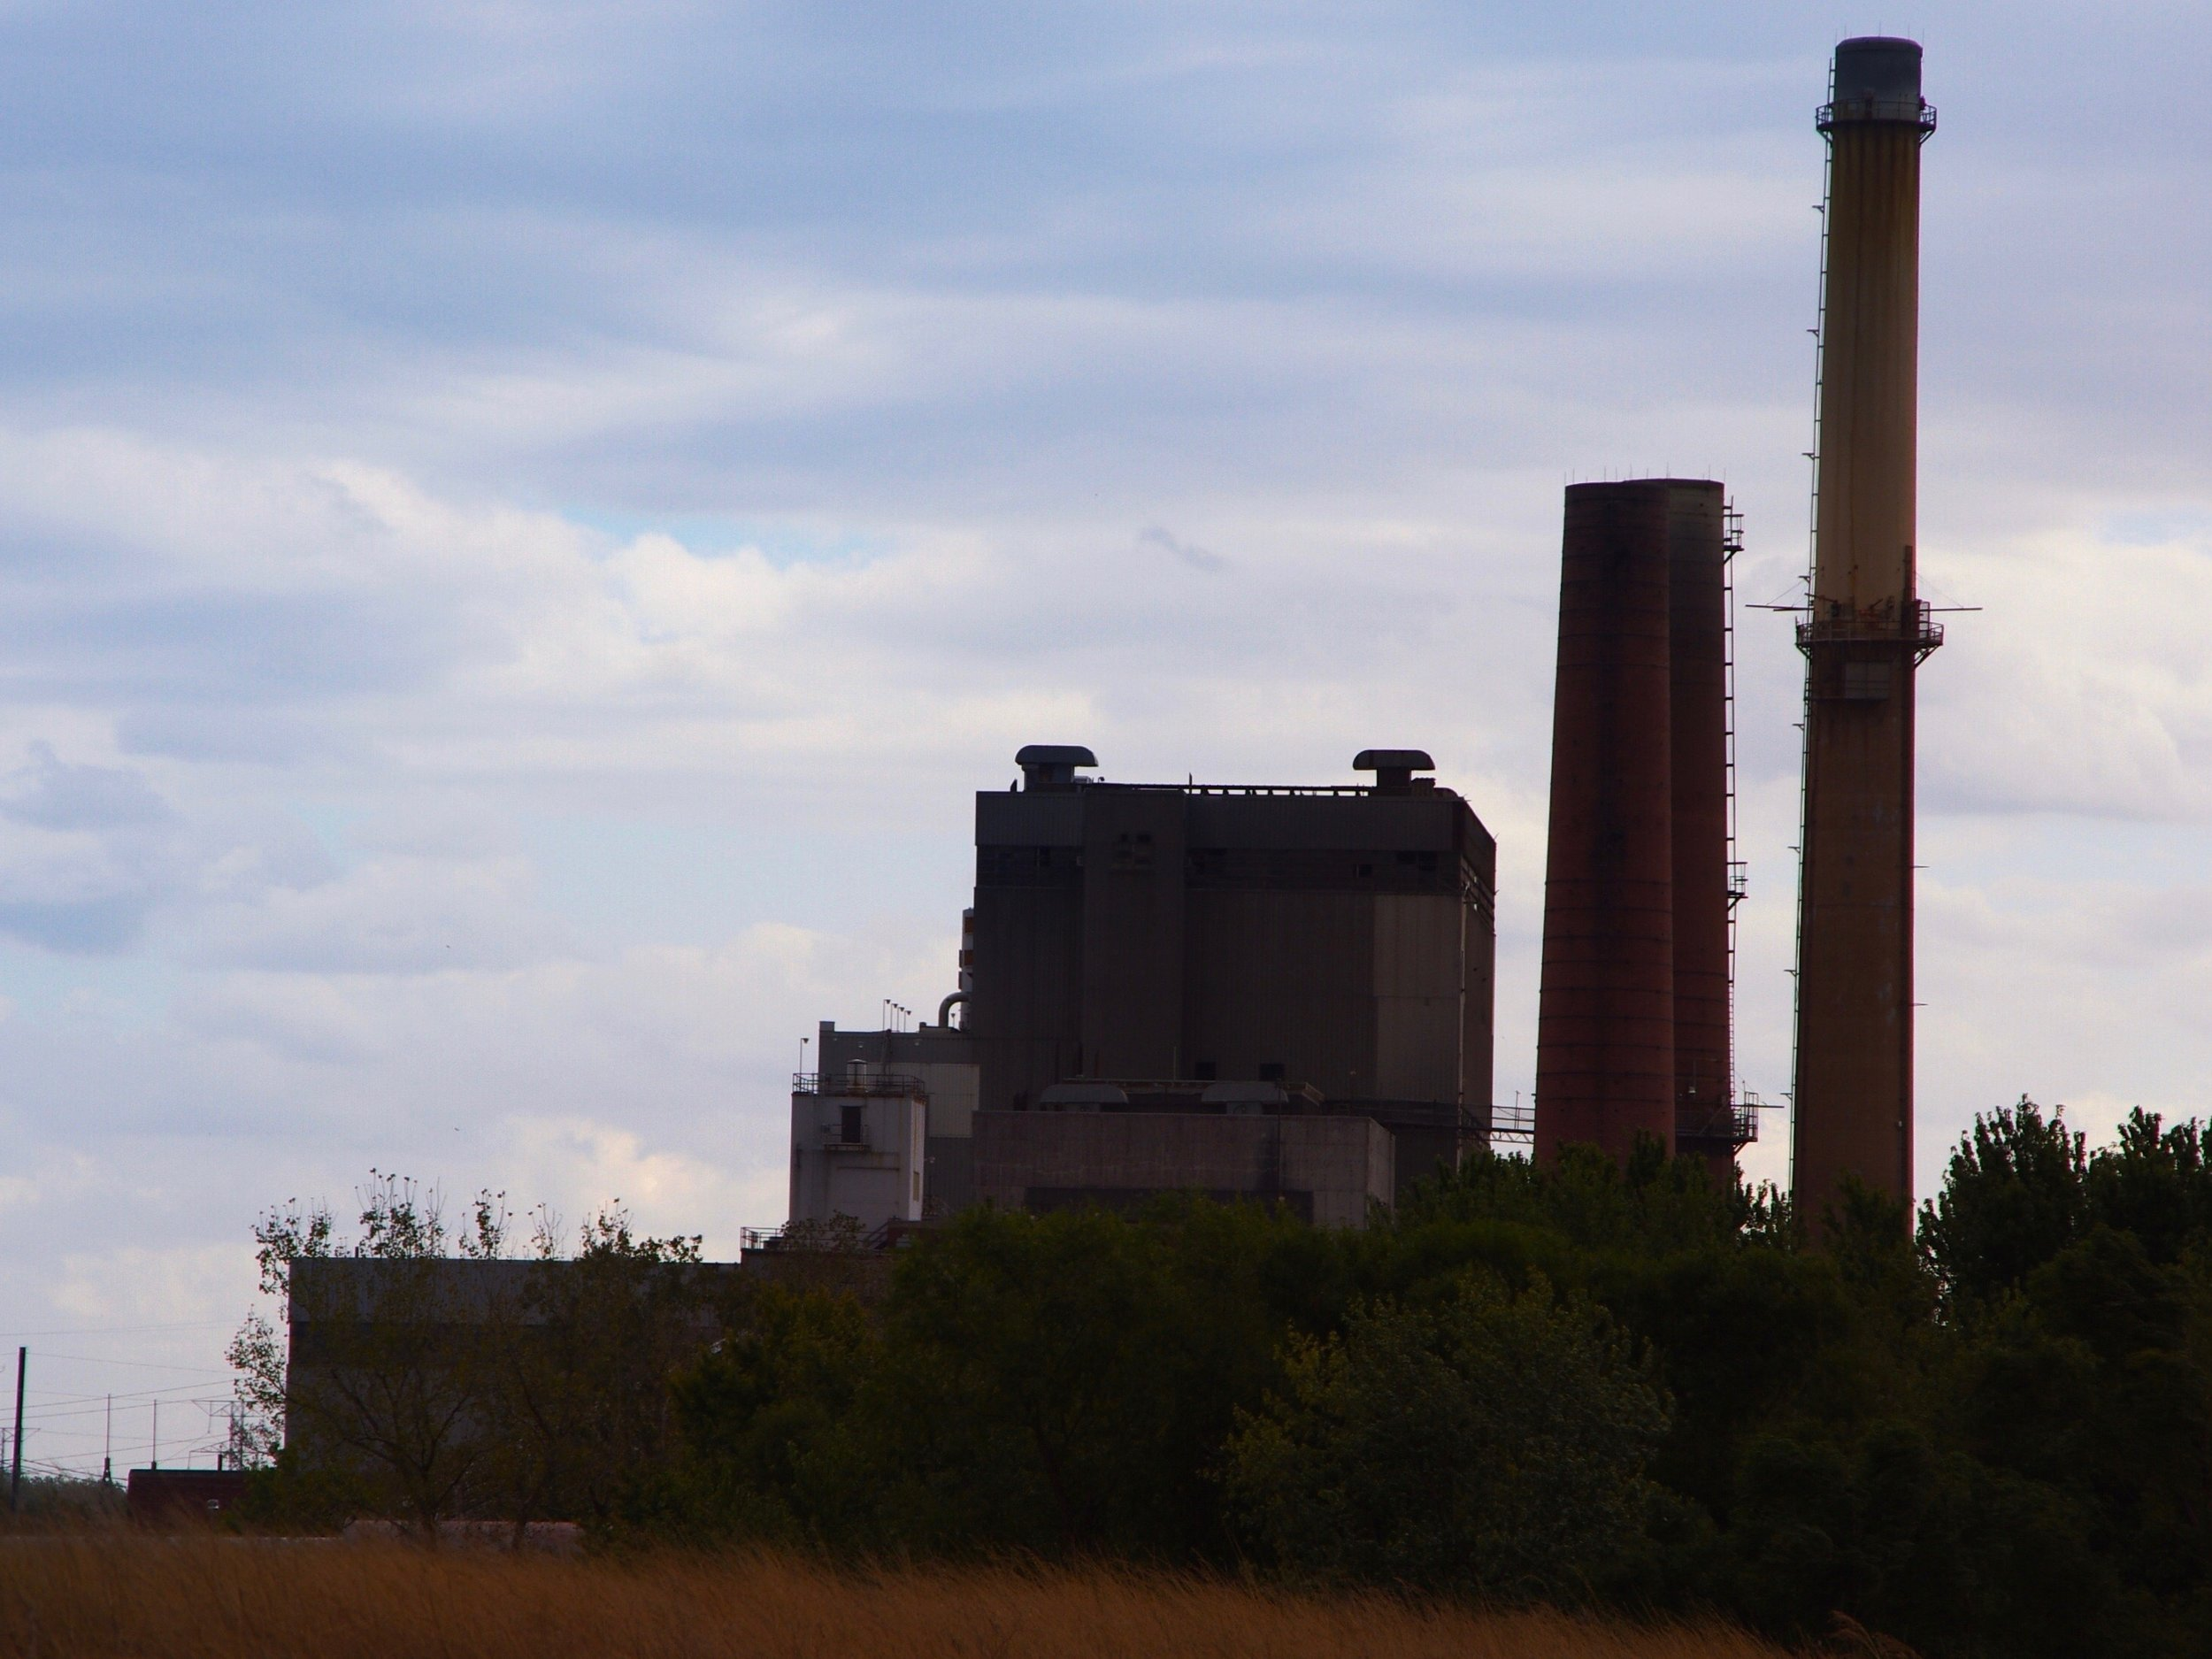 The Wood River coal power plant was closed by Dynegy before the energy company was bought by Vistra last year. (Shutterstock)